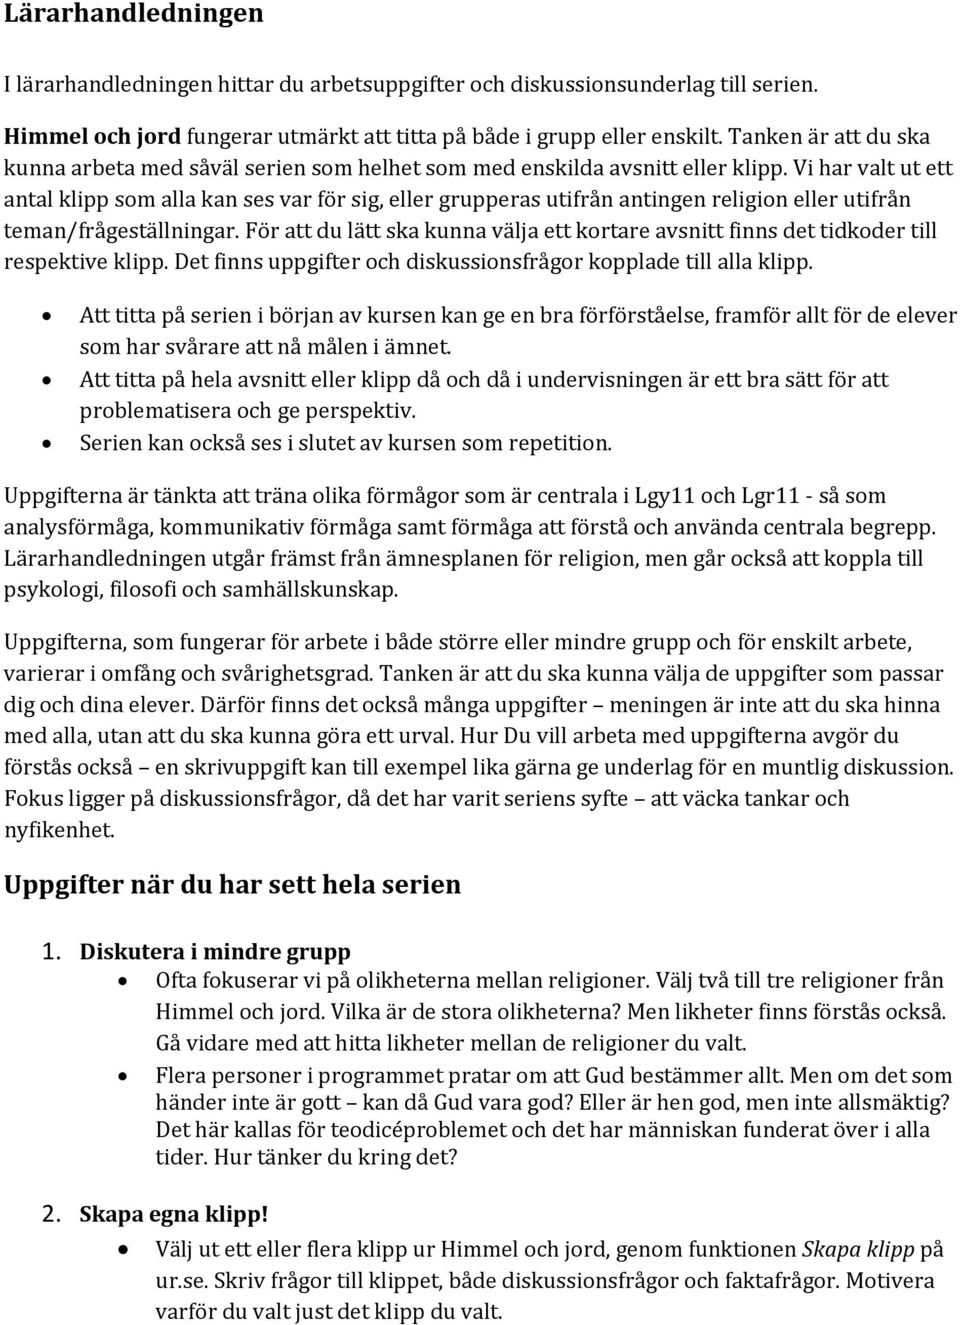 Bästa iphone dating Dating site annons exempel.